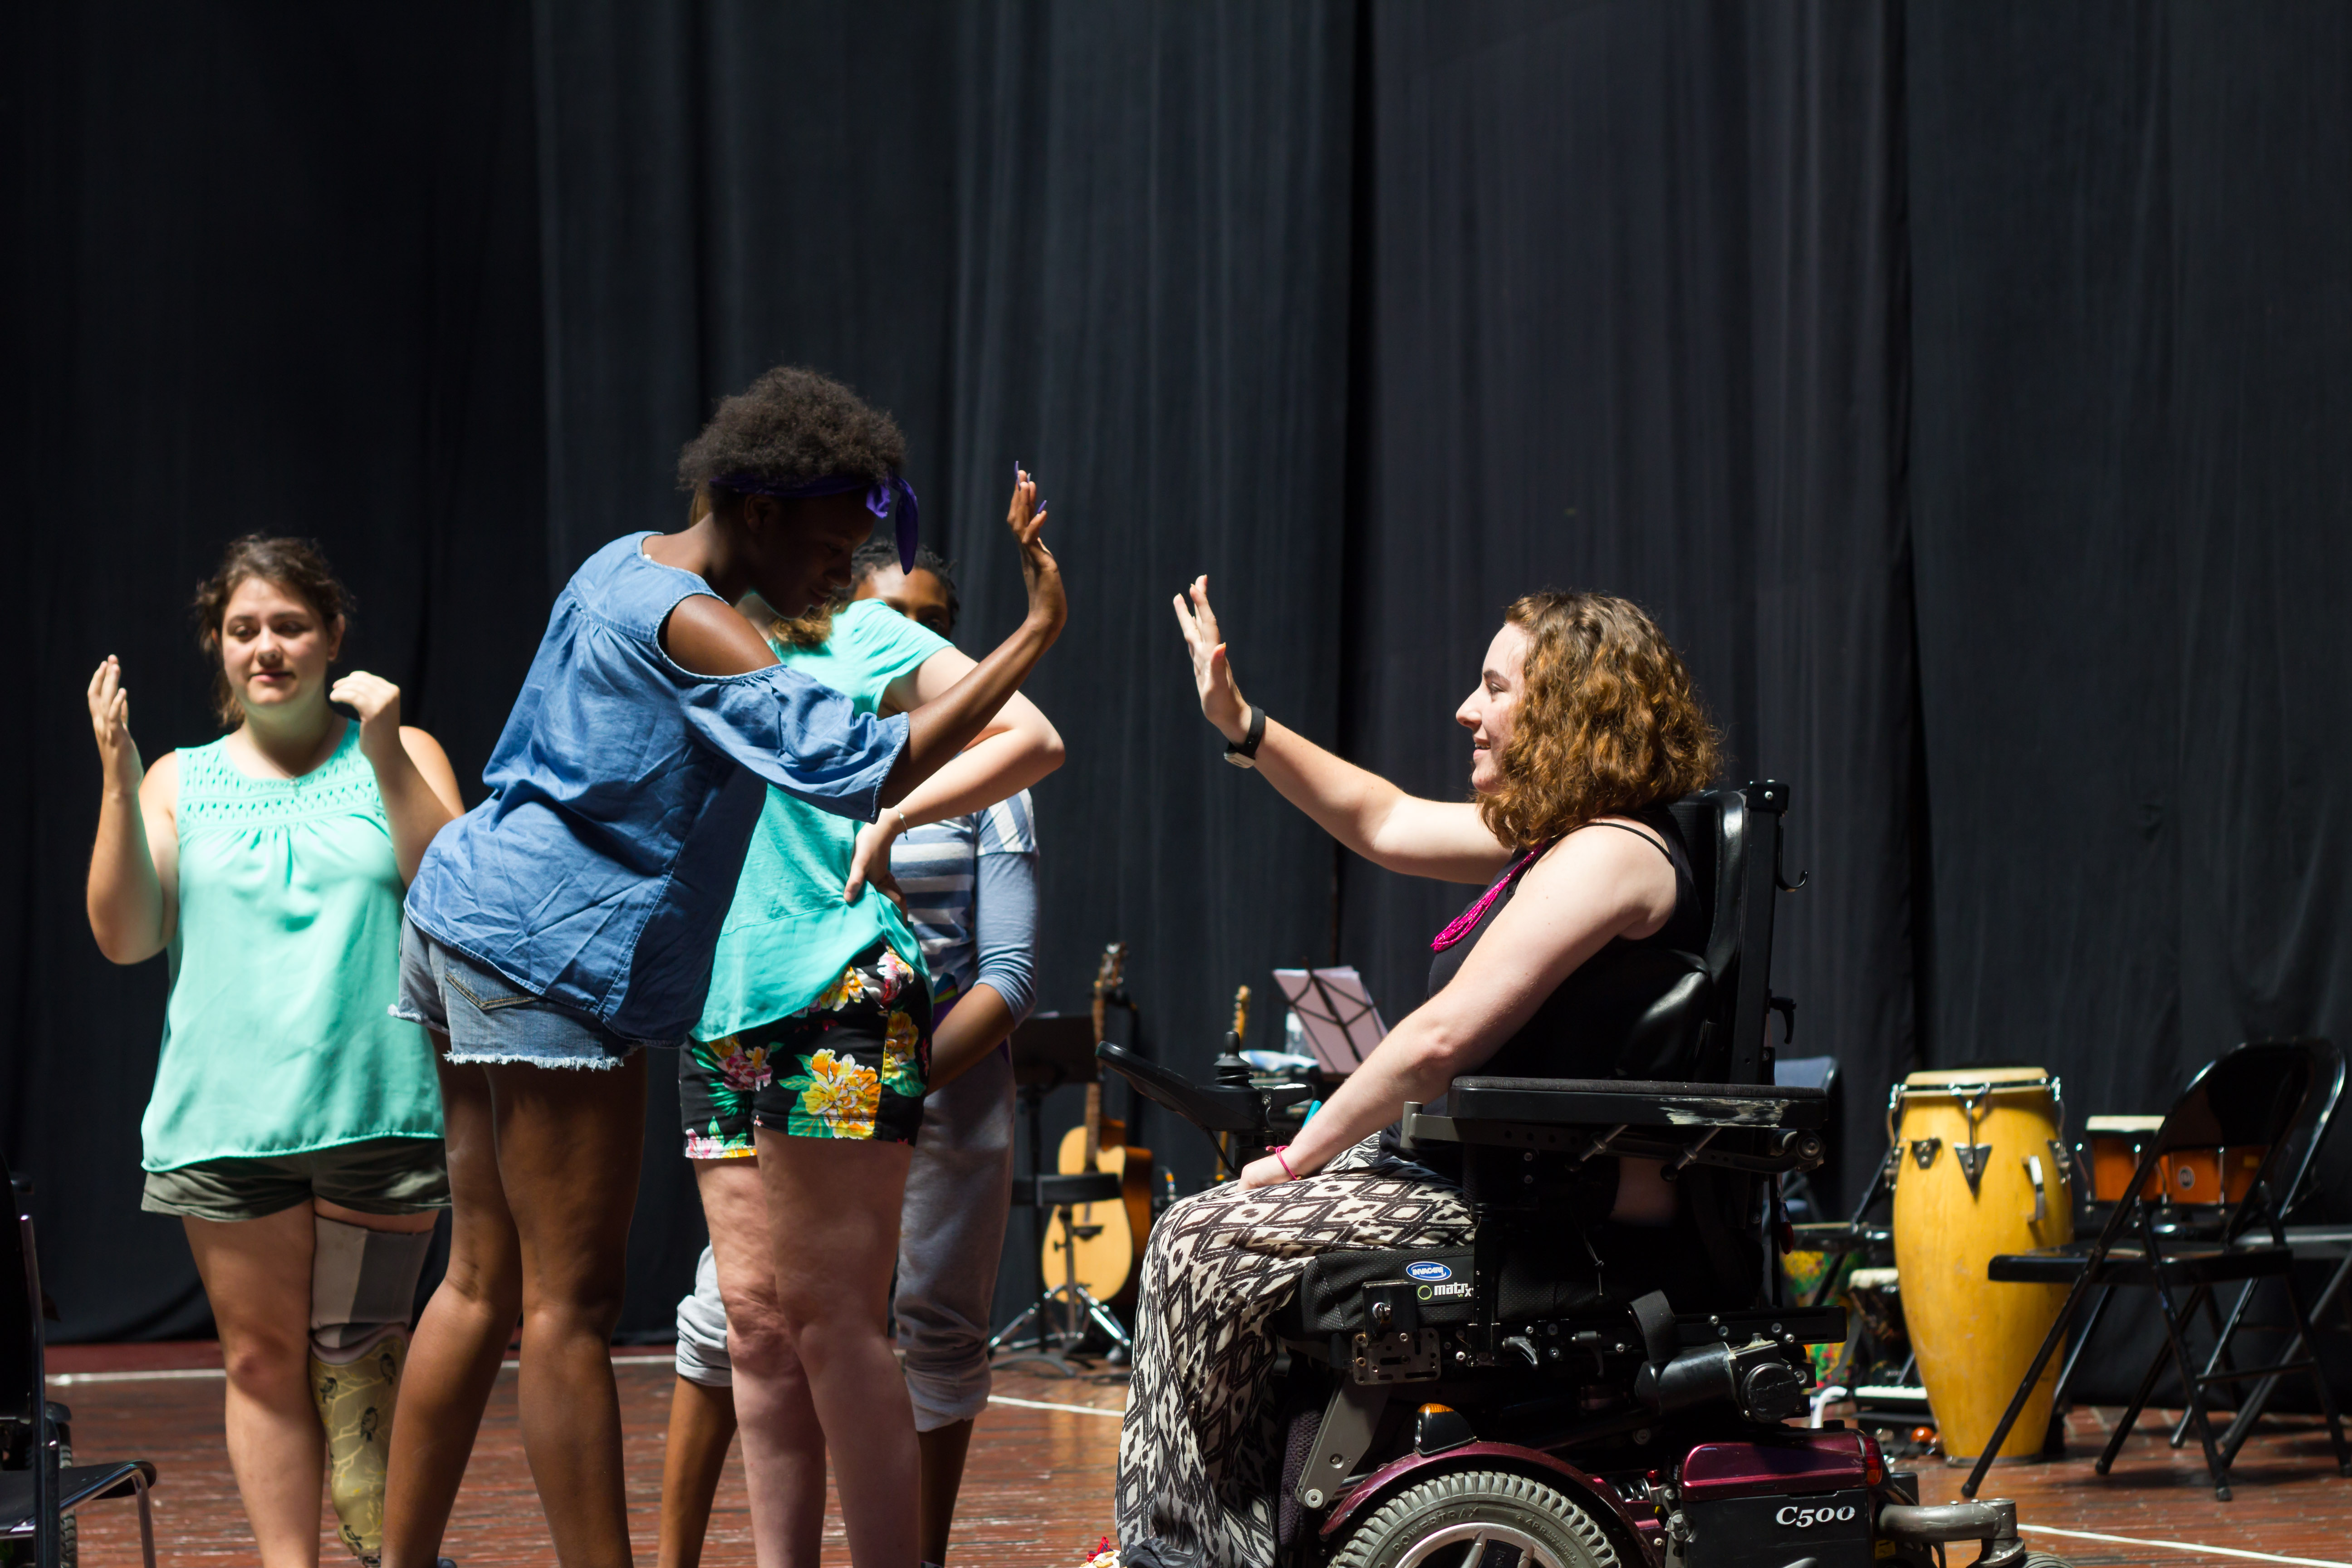 A young black woman and a young white woman in a wheelchair giving each other a high five